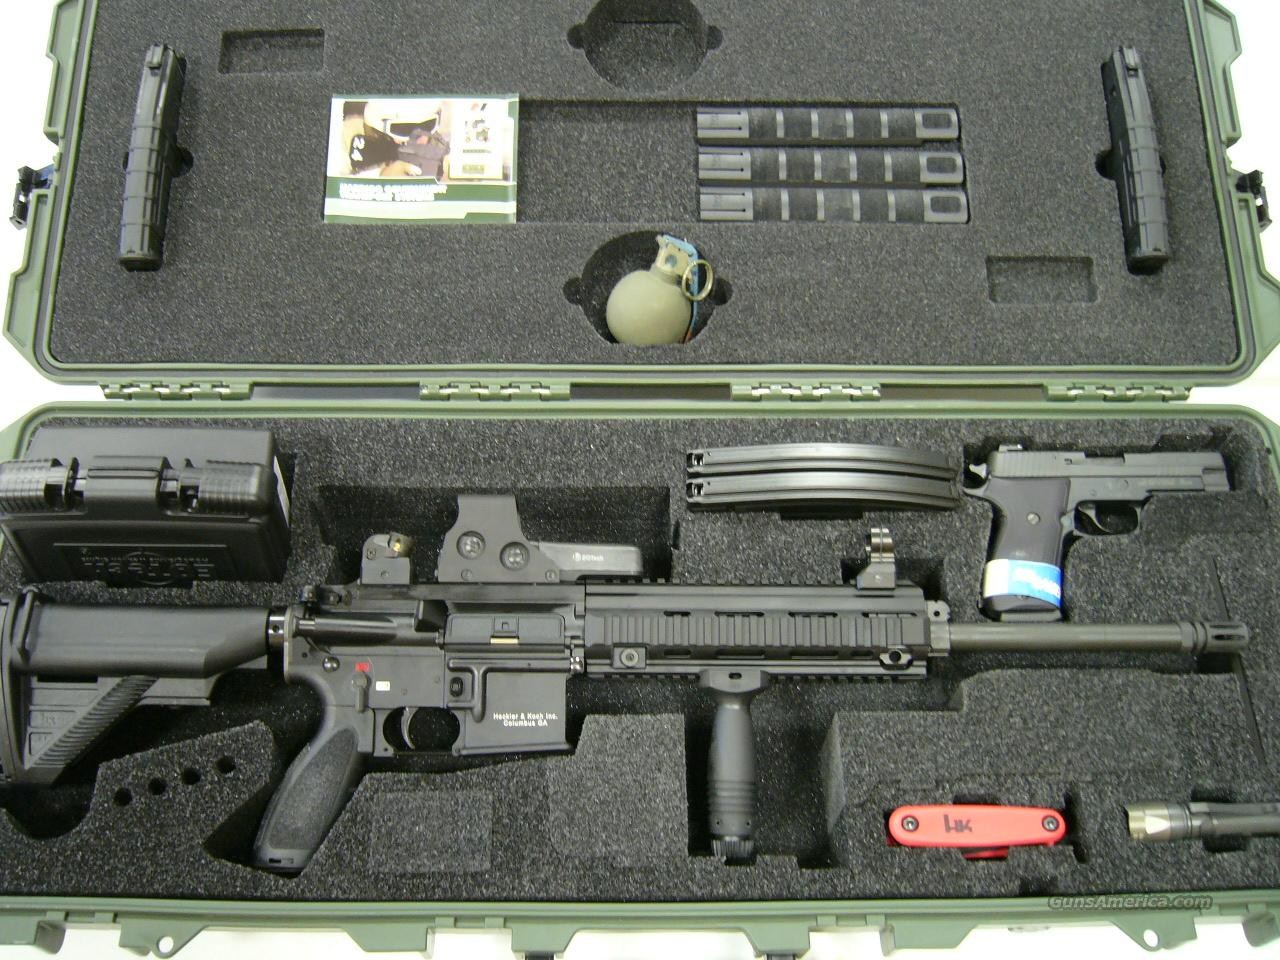 HECKLER KOCH 416 HK MR 556 A1 MR556A1 HK416 HK